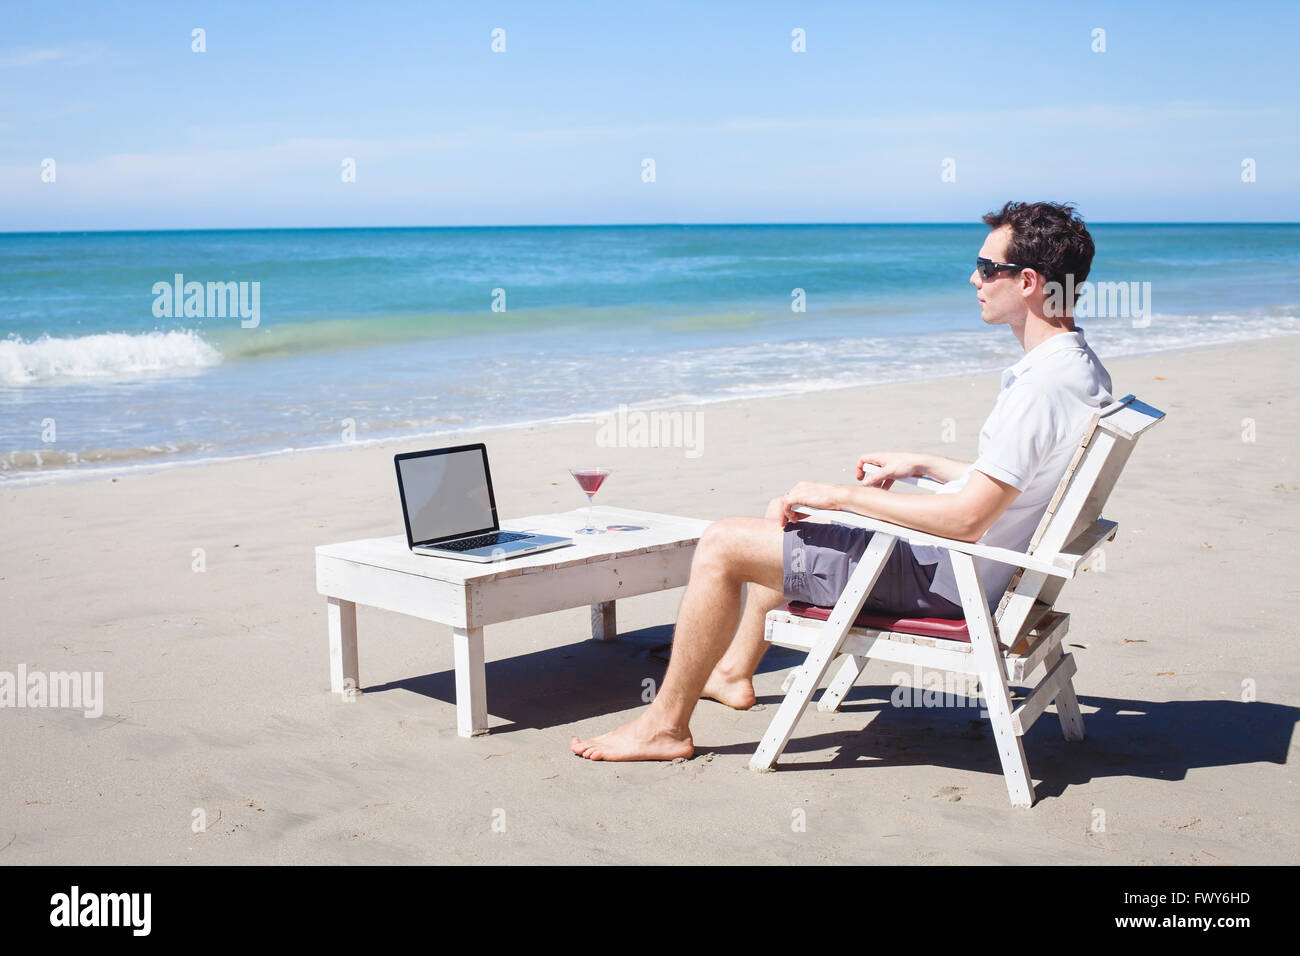 telecommuting businessman relaxing on the beach laptop and stock photo telecommuting businessman relaxing on the beach laptop and cocktail lancer workplace dream job